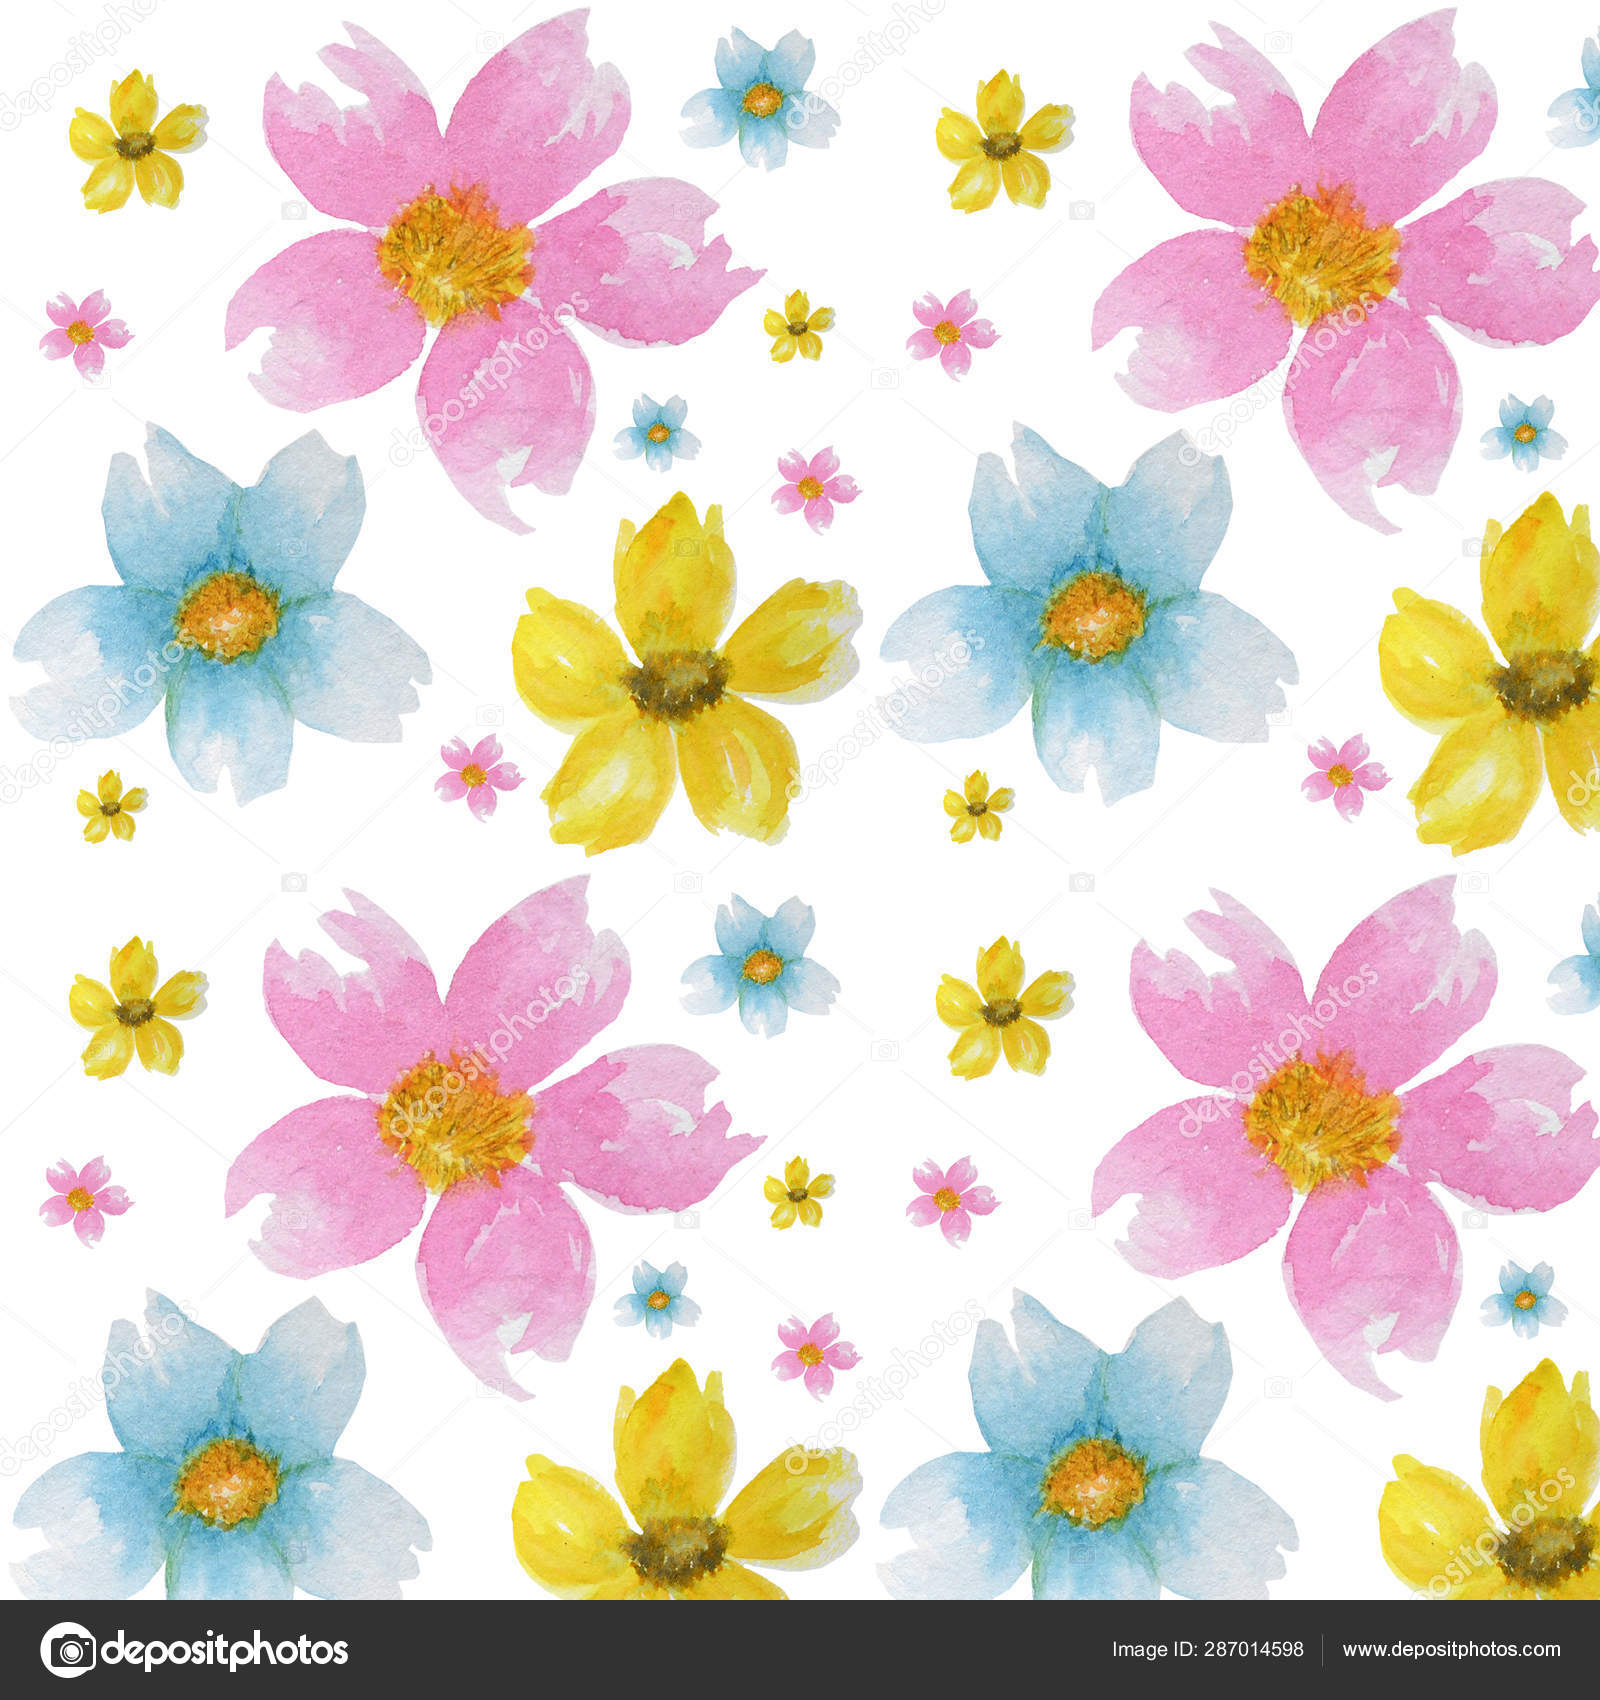 Free Springtime Background Cliparts, Download Free Clip Art, Free Clip Art  on Clipart Library